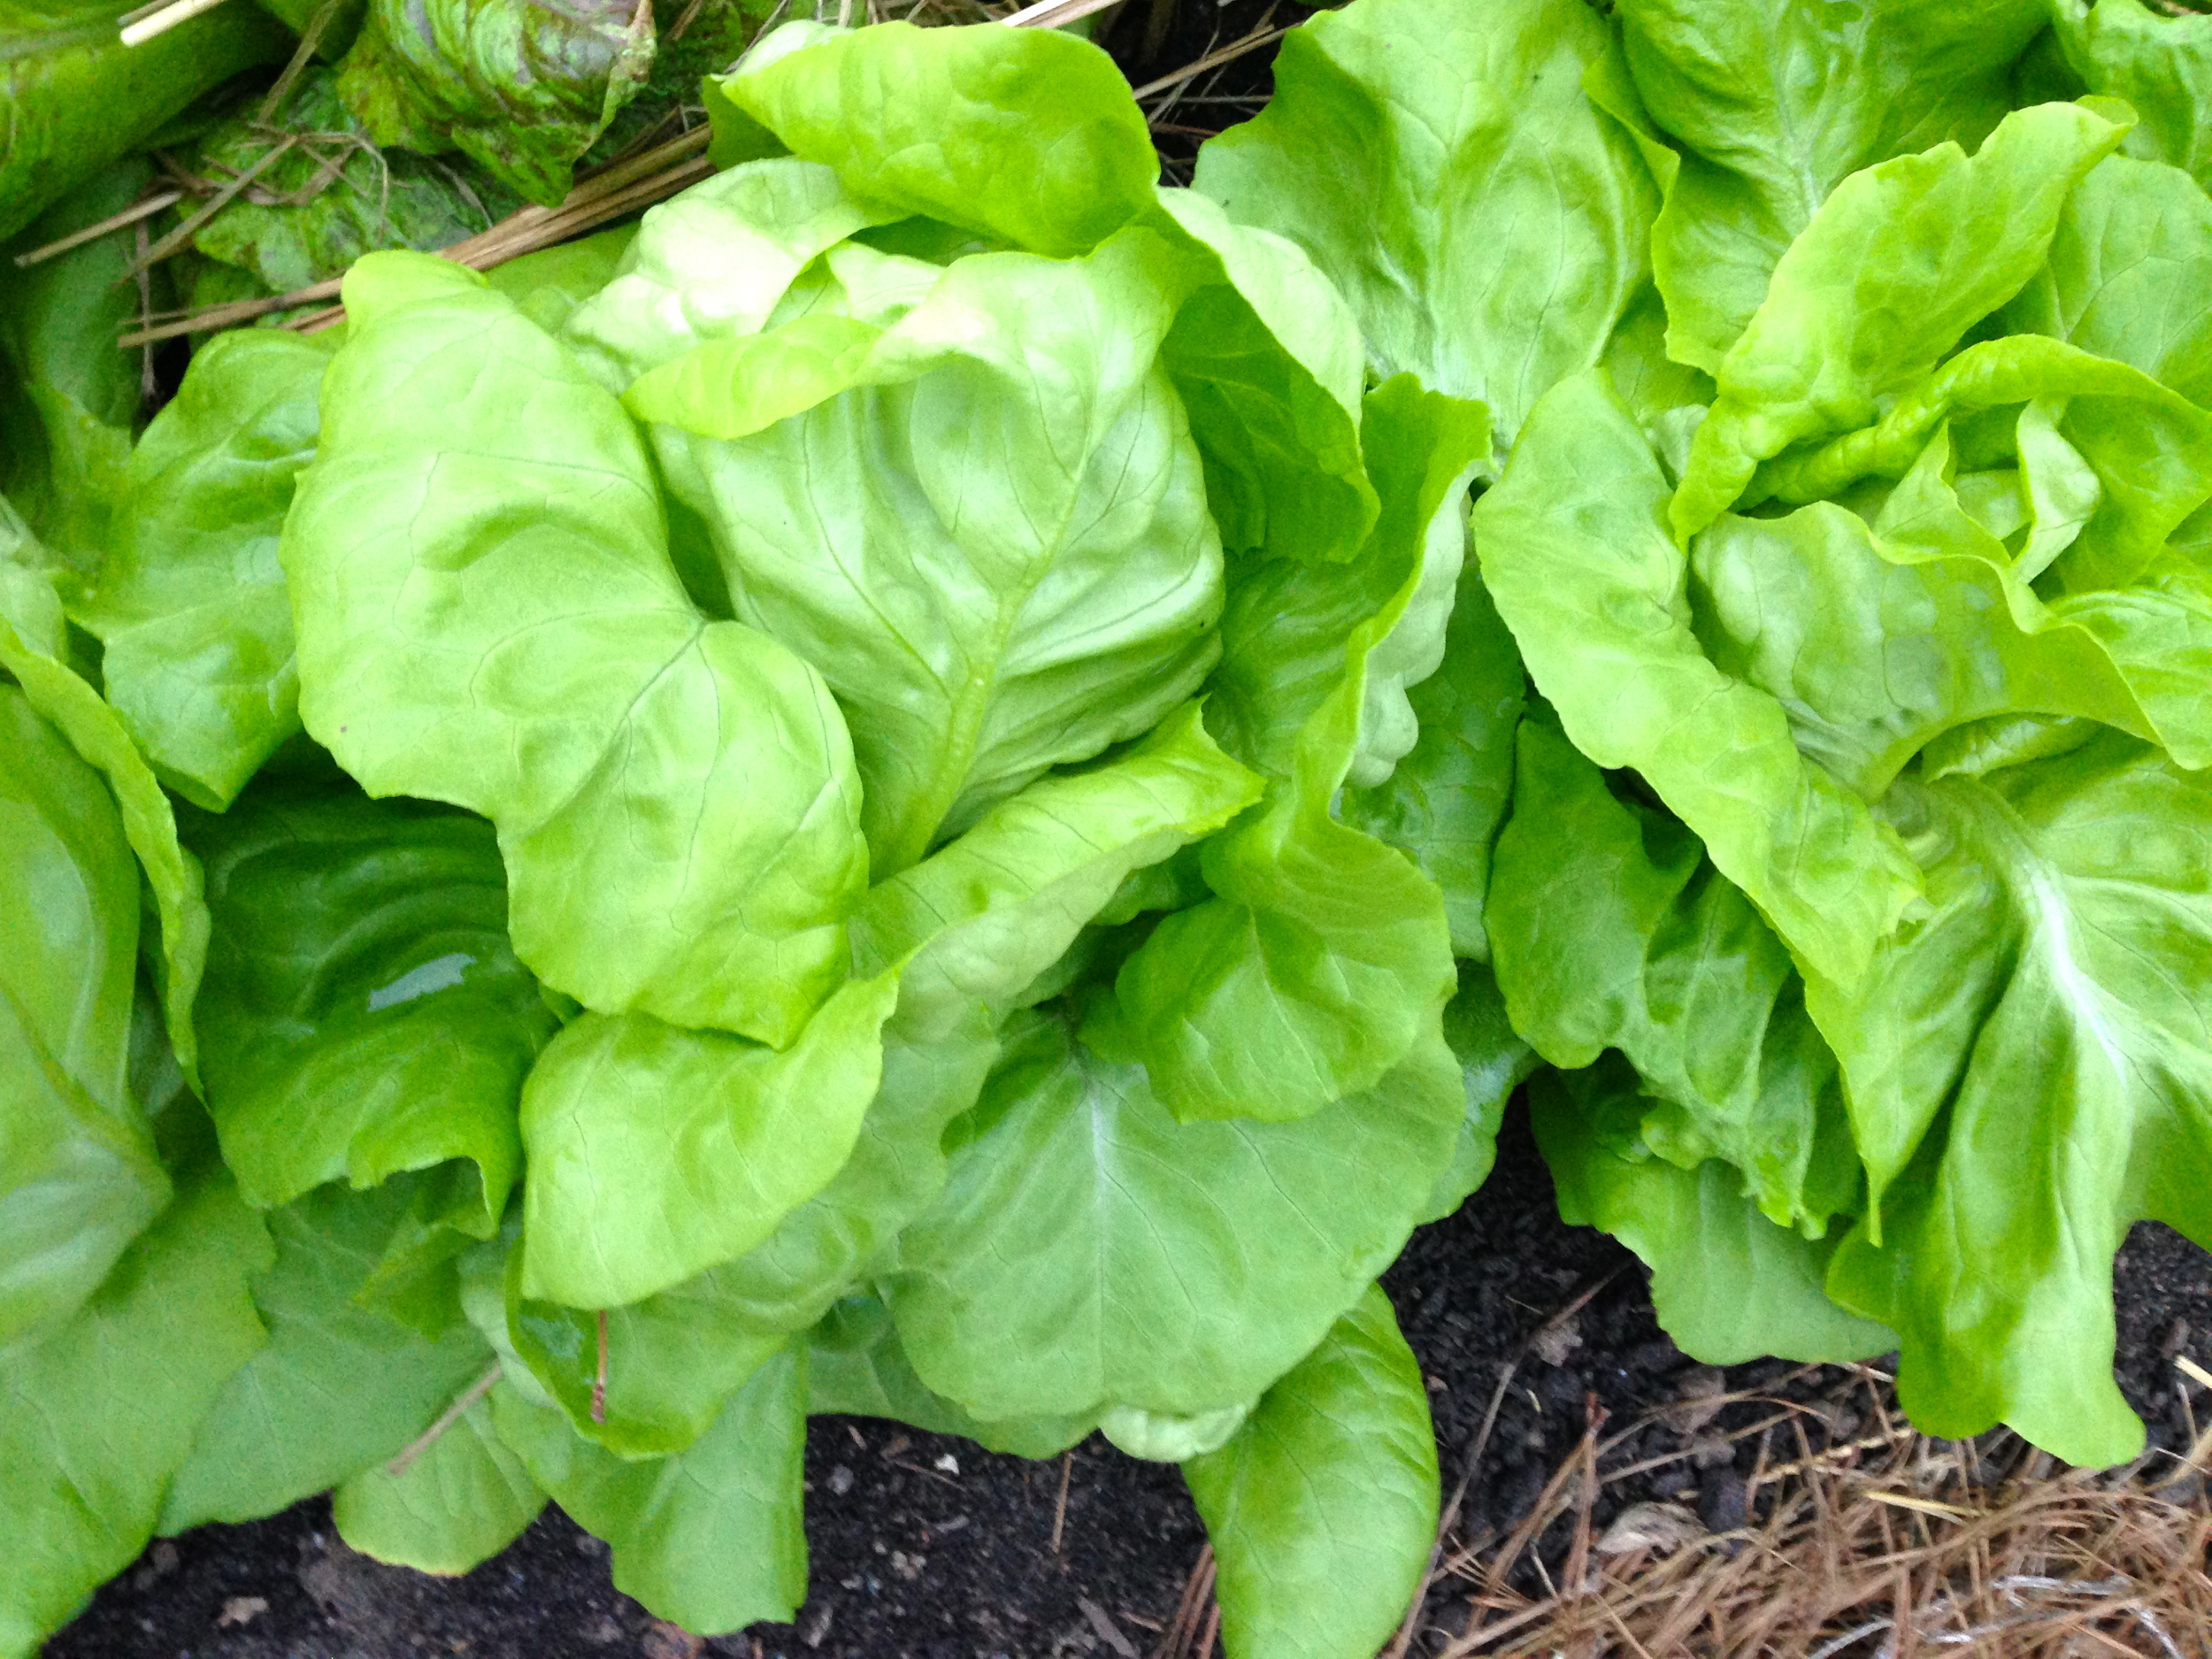 """This close-up shows the nicely formed heads of a """"butter lettuce"""" type. I've always thought this lettuce was appropriately named as it has a rich flavor and """"buttery"""" texture to its leaves."""